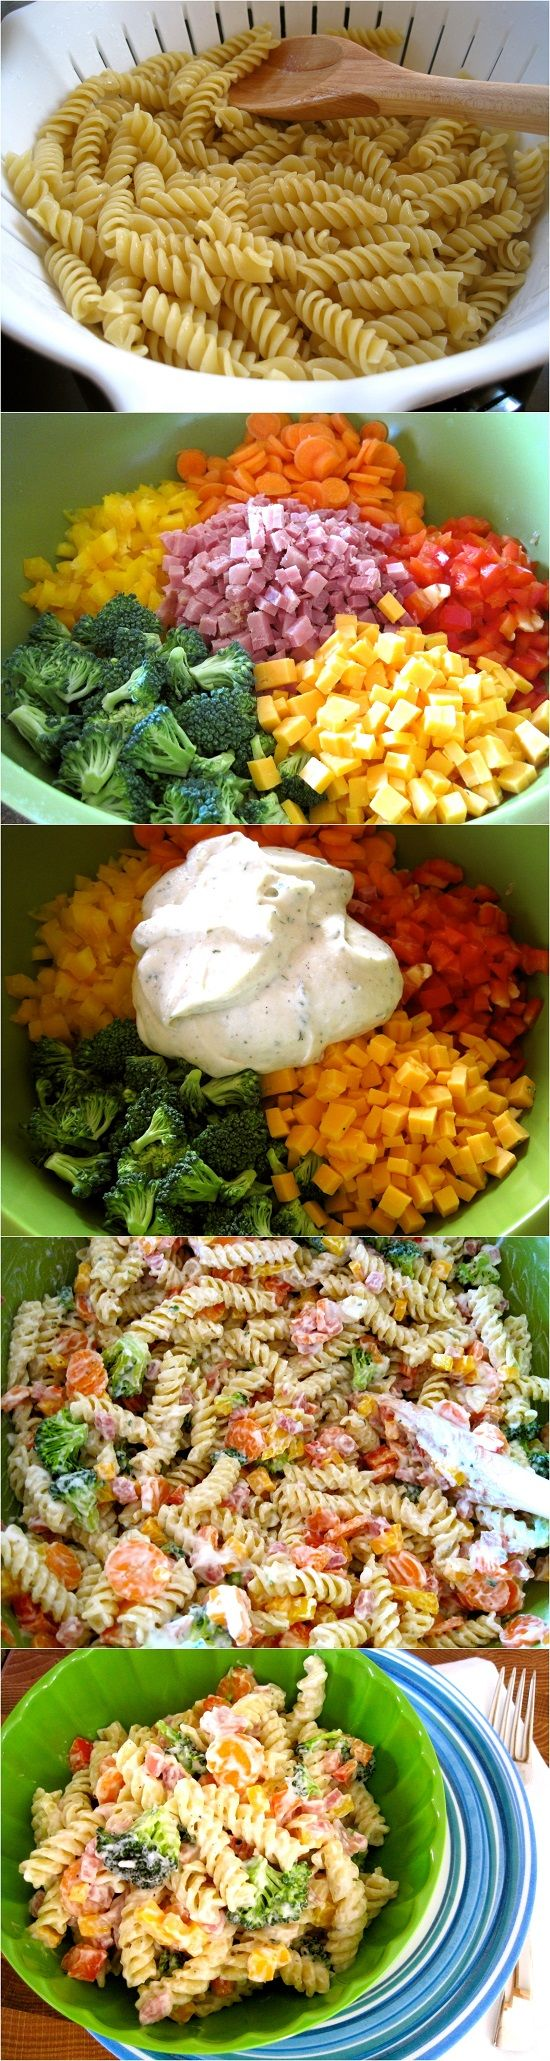 Ranch Pasta Salad... But as always, with Greek yogurt instead of sour cream!